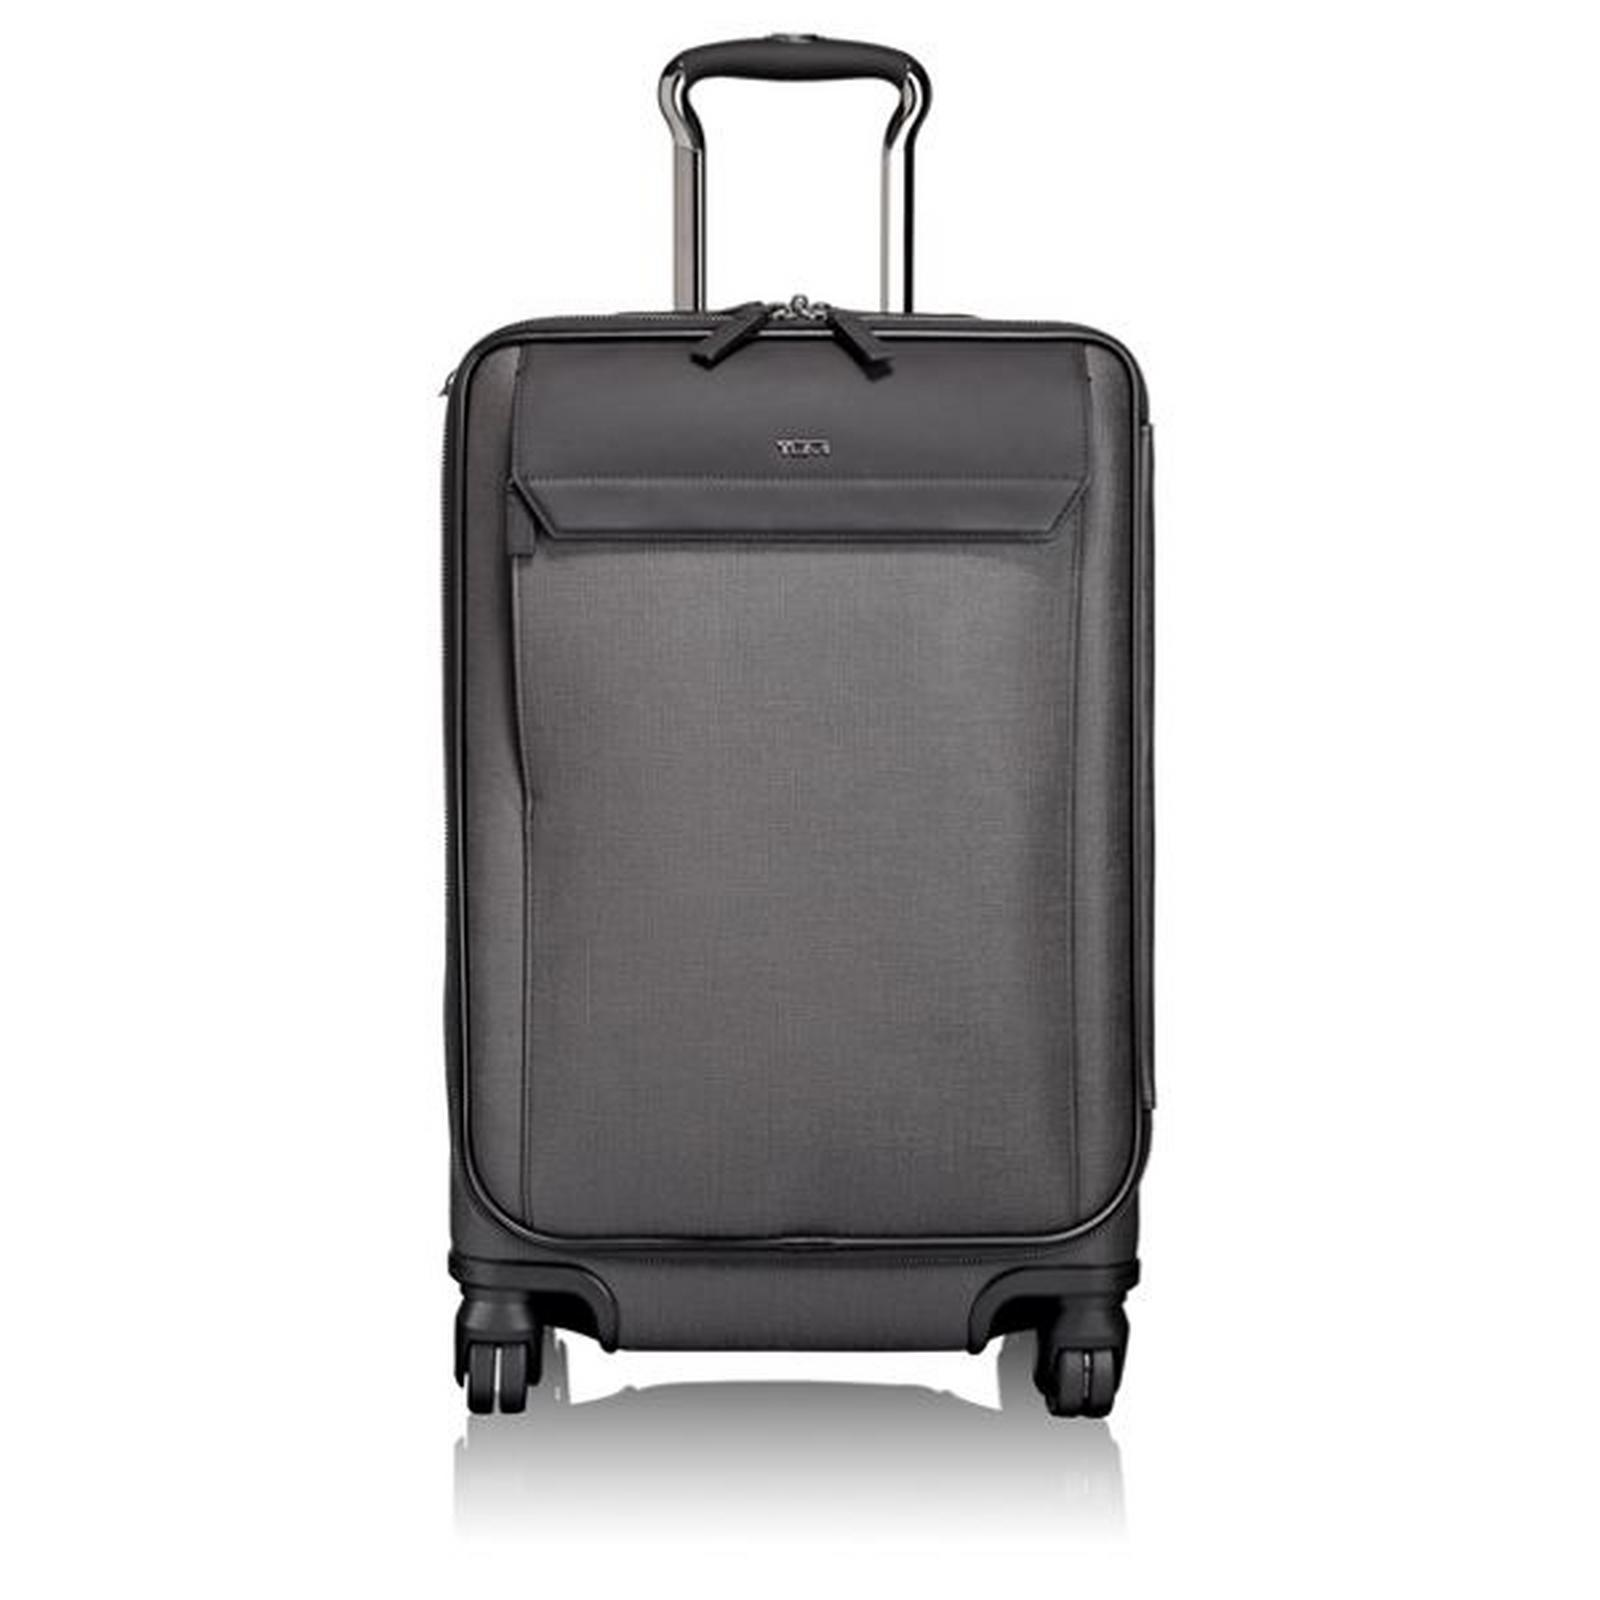 Arcadia International Expandable Carry-On